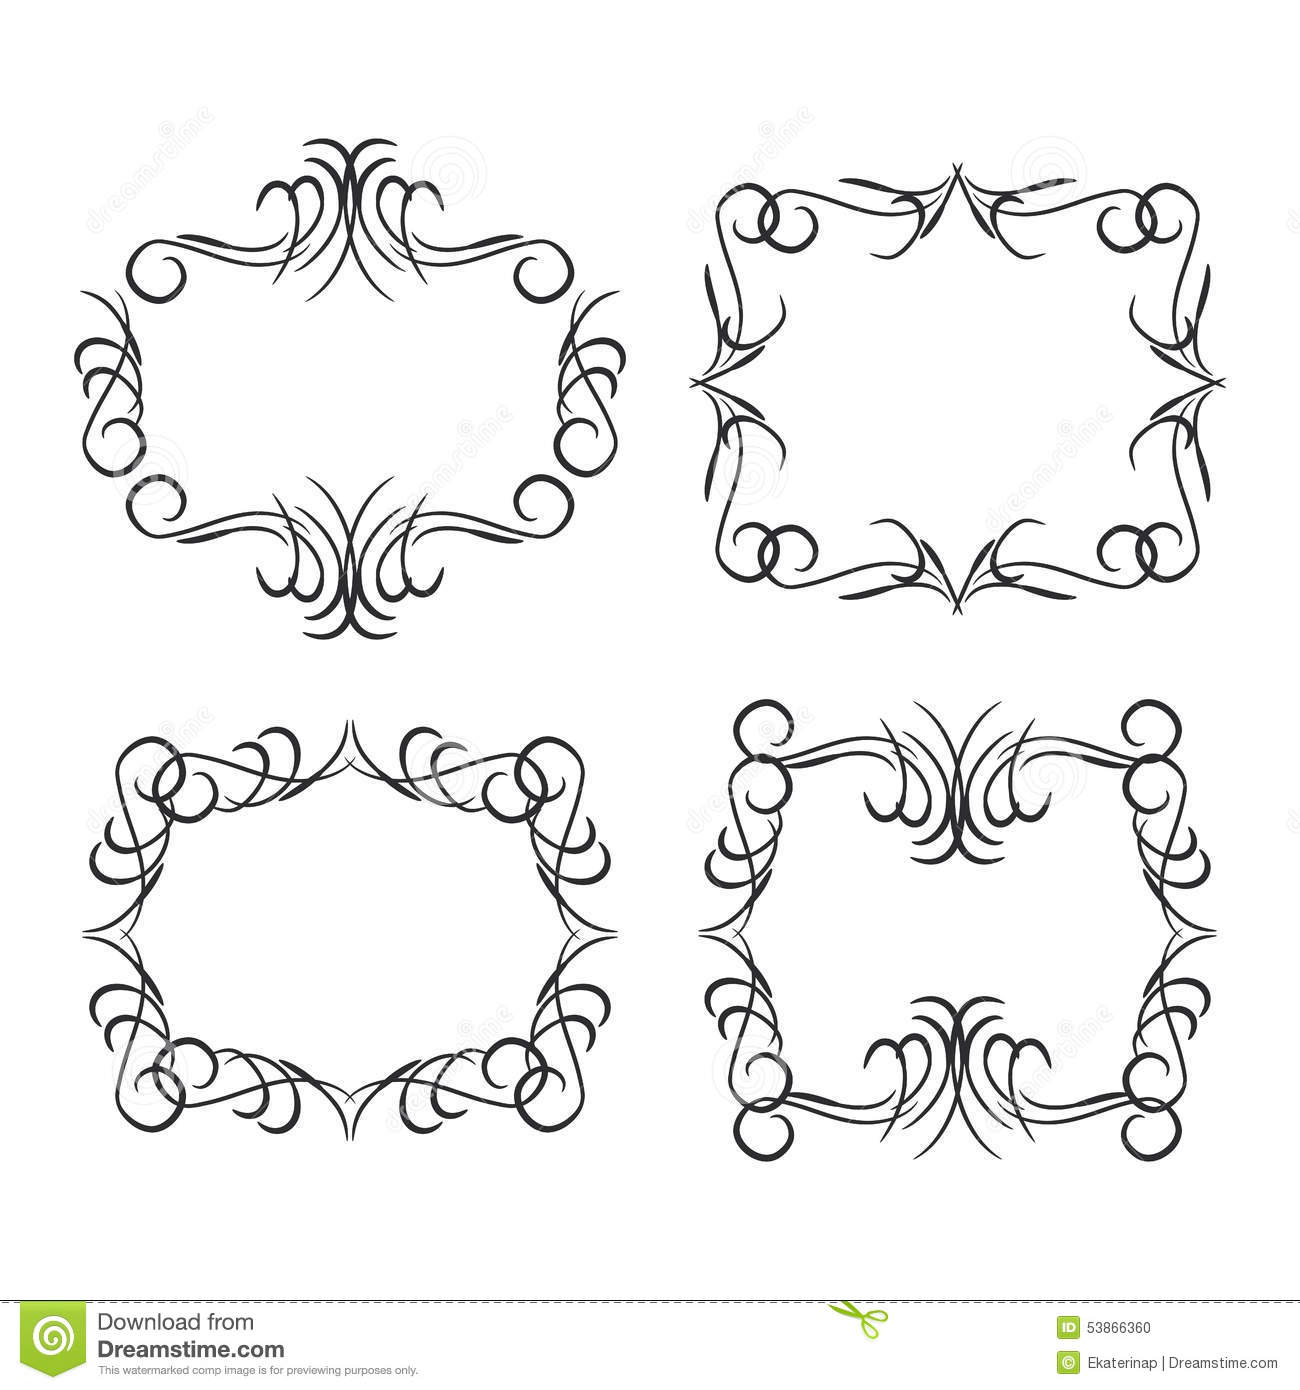 Vintage Border Design Elements Black On White Background Vector